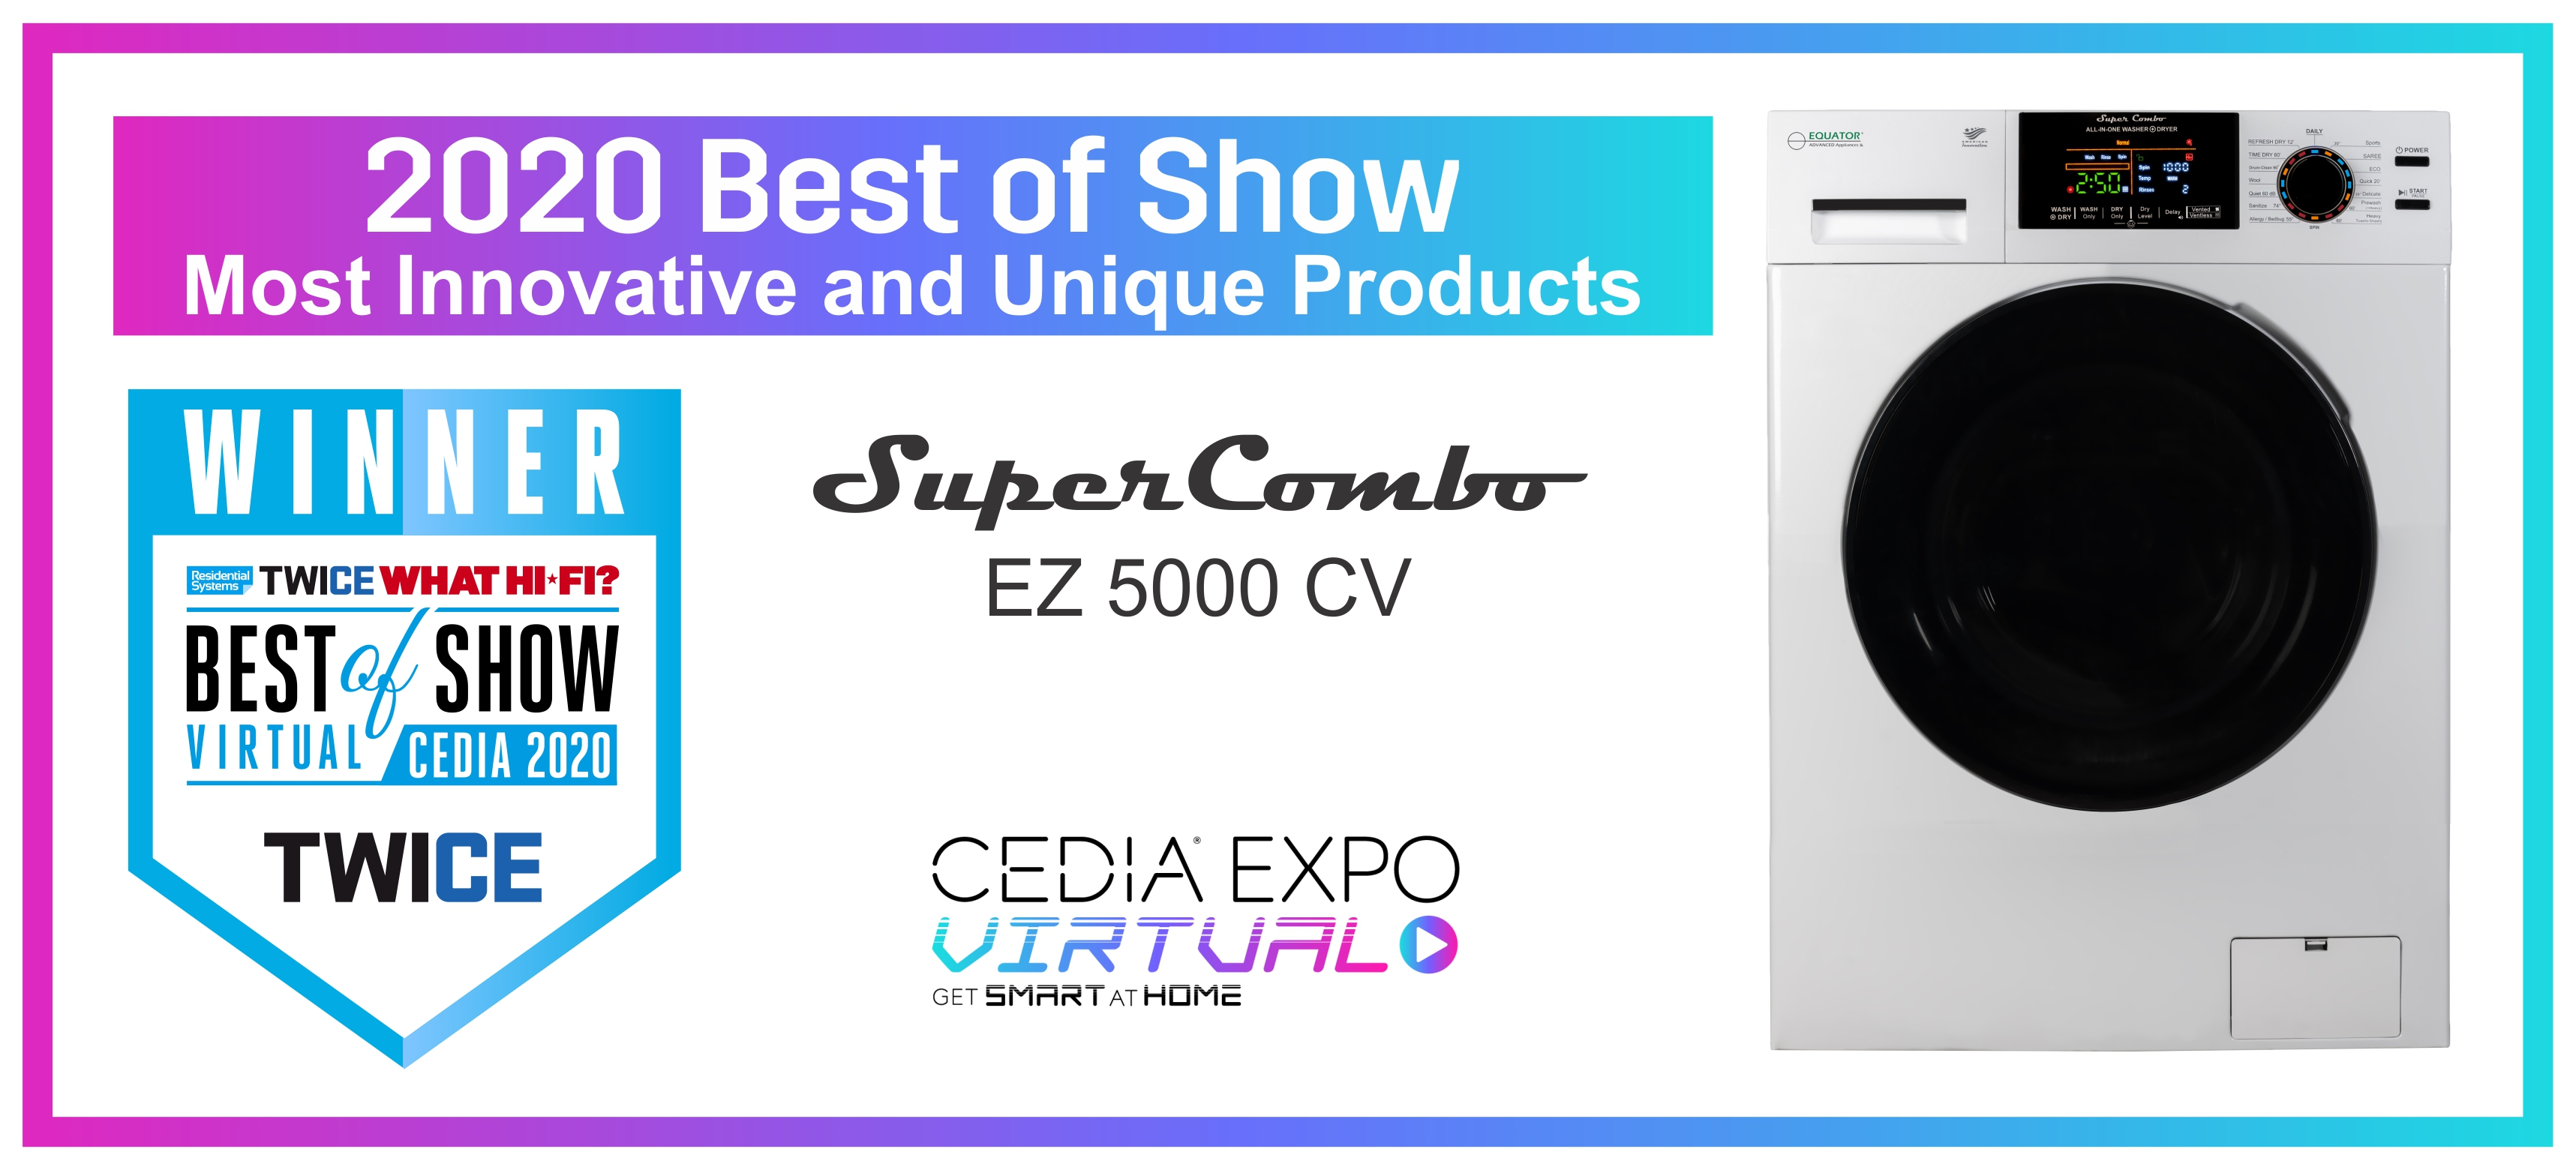 Equator Combo Washer-Dryer Wins Cedia Award